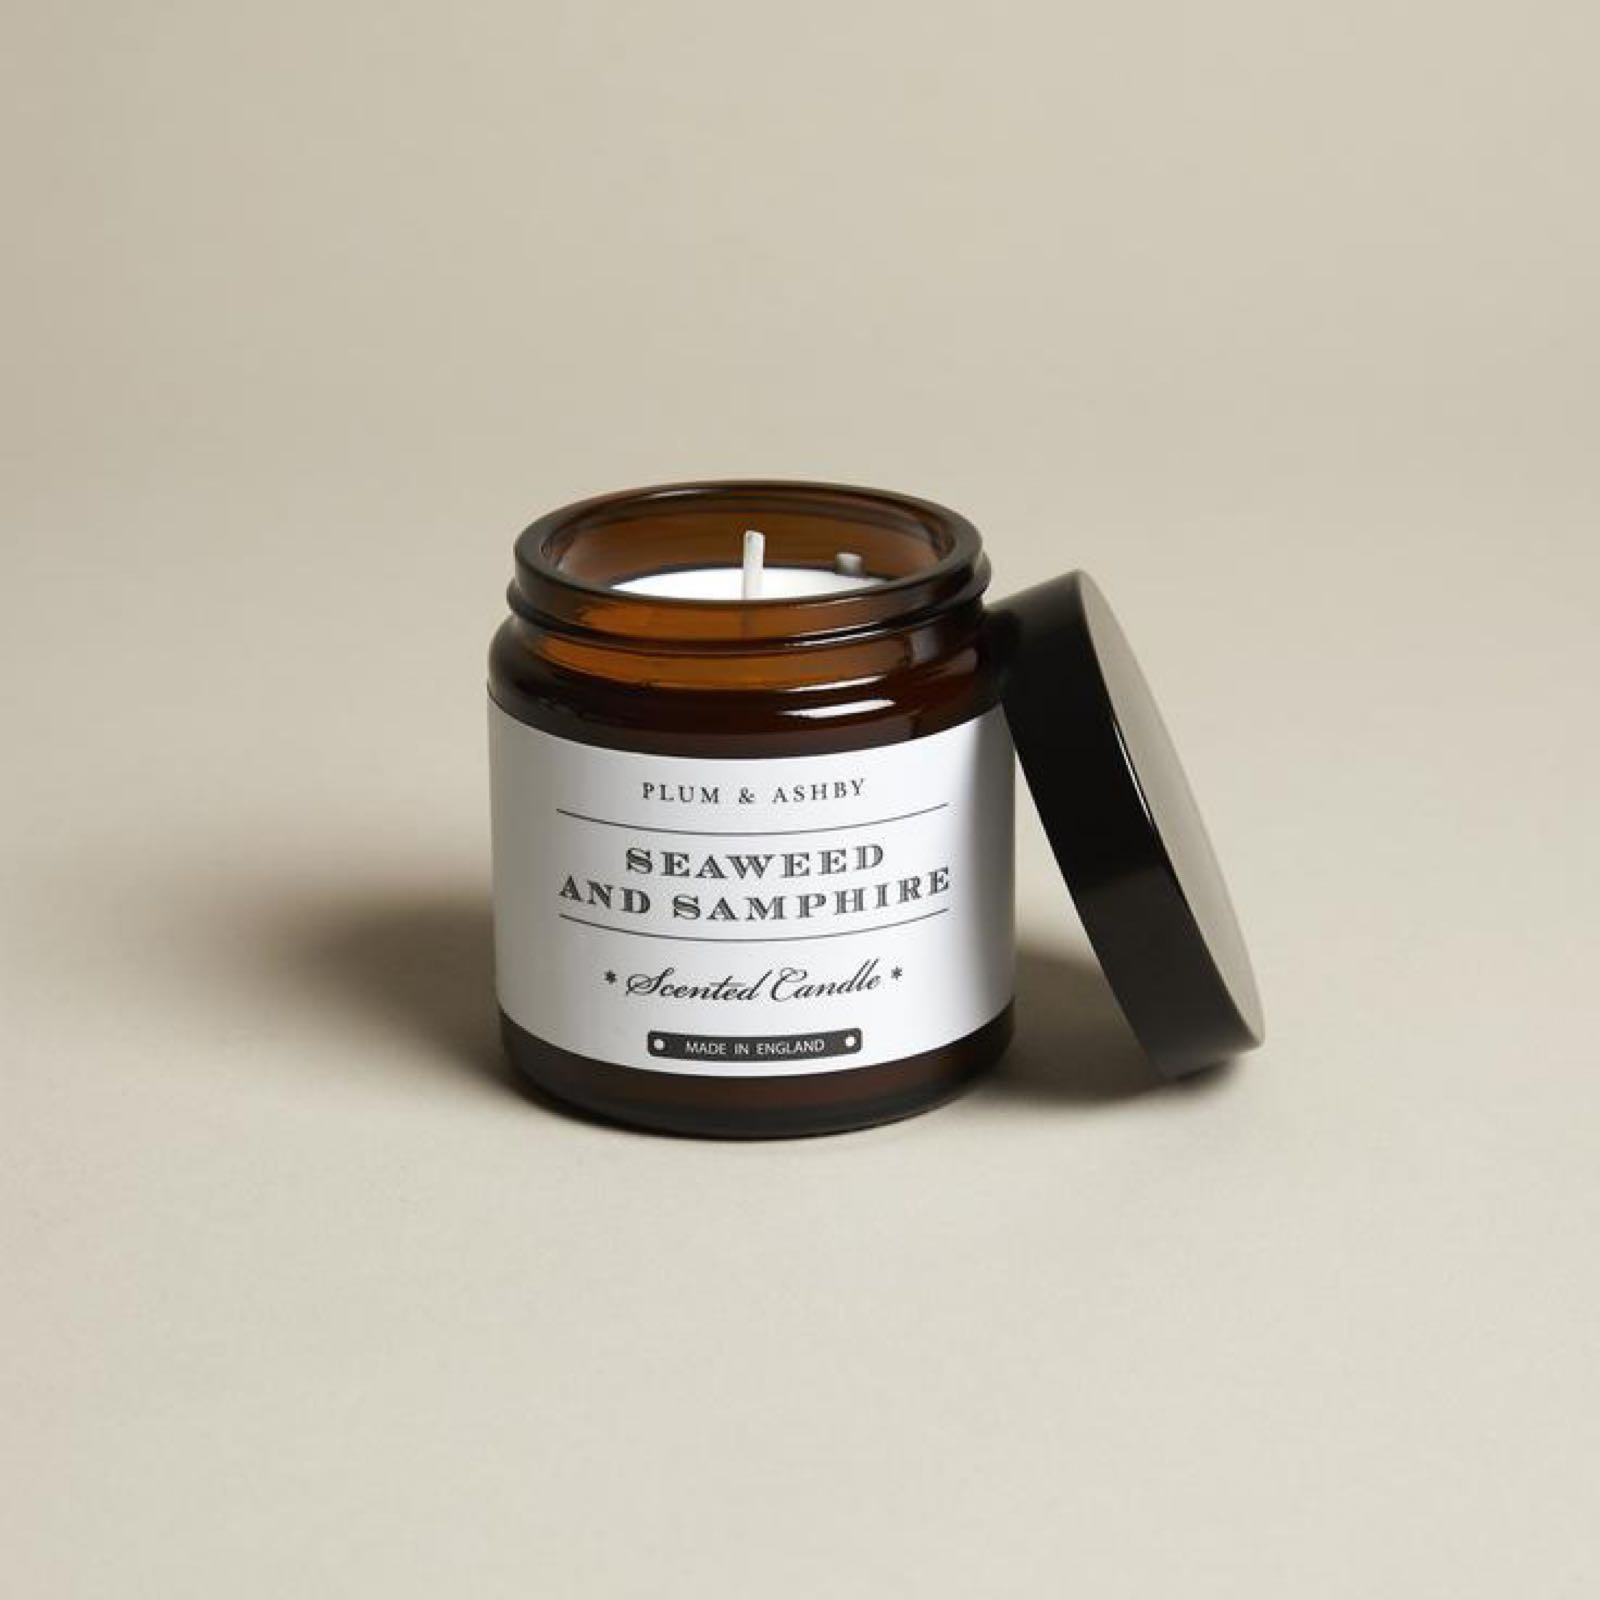 Plum & Ashby Seaweed & Samphire Fragranced Candle in a Jar made with 100% natural plant wax offers 20 hours Burn time